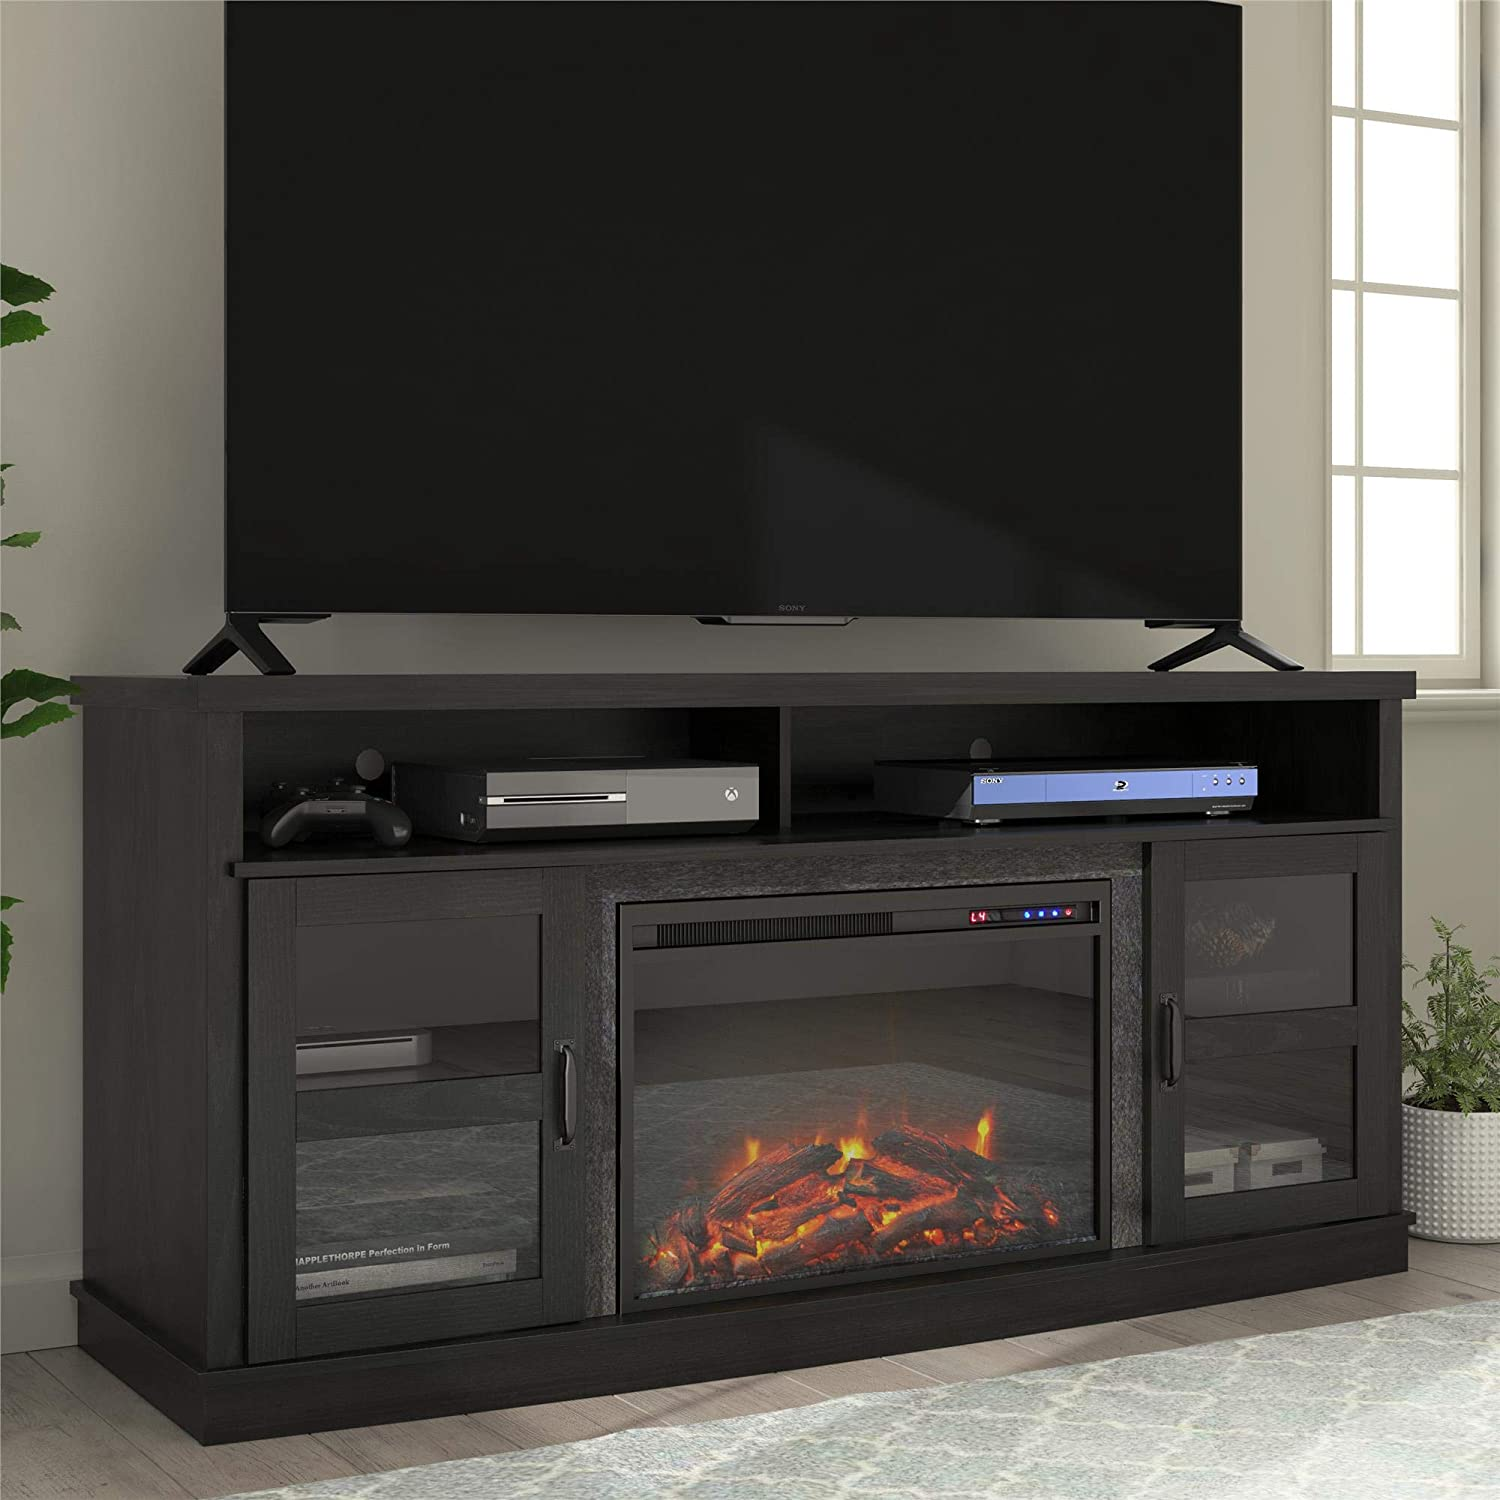 """Ameriwood Home Ayden Park Fireplace TV Stand up to 65"""" in Black Oak"""